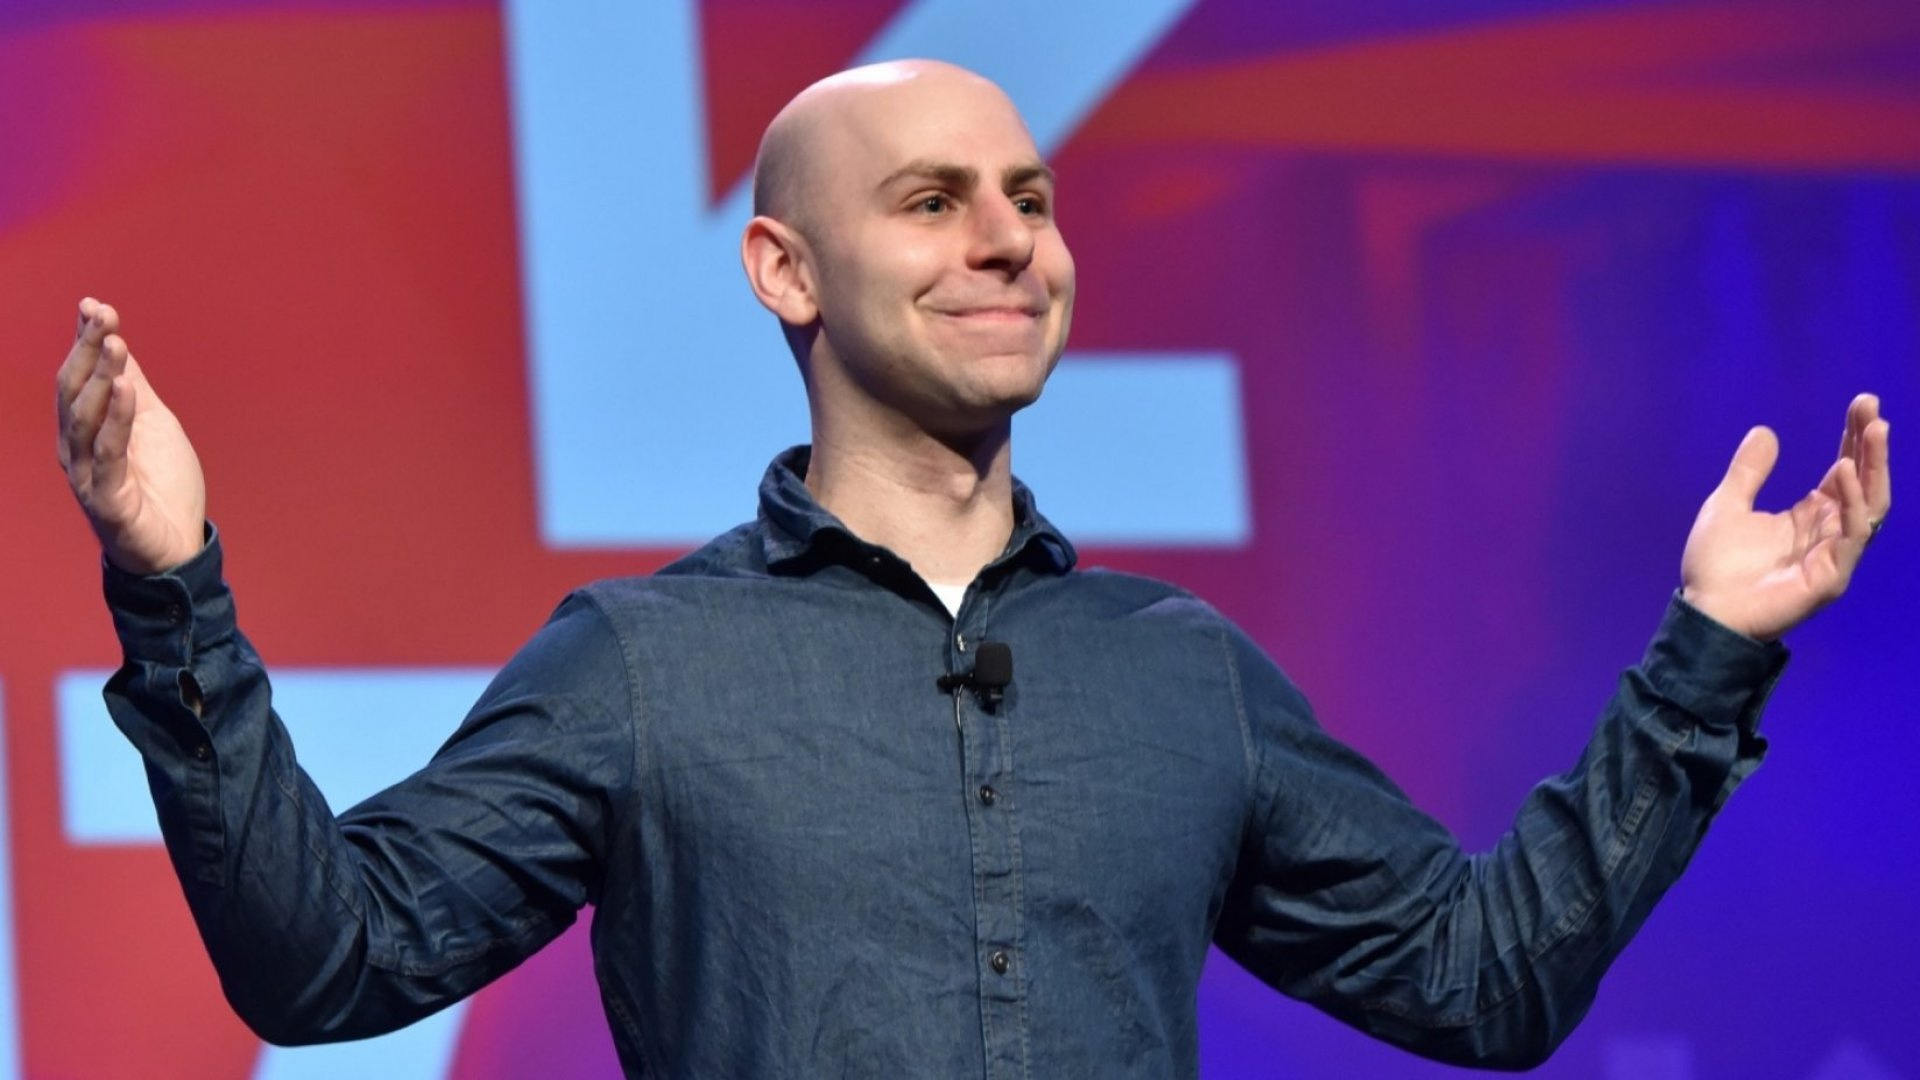 Author and professor Adam Grant speaks onstage at the Interactive Keynote during 2017 SXSW Conference and Festivals in Austin. (Photo by Amy E. Price/Getty Images for SXSW)